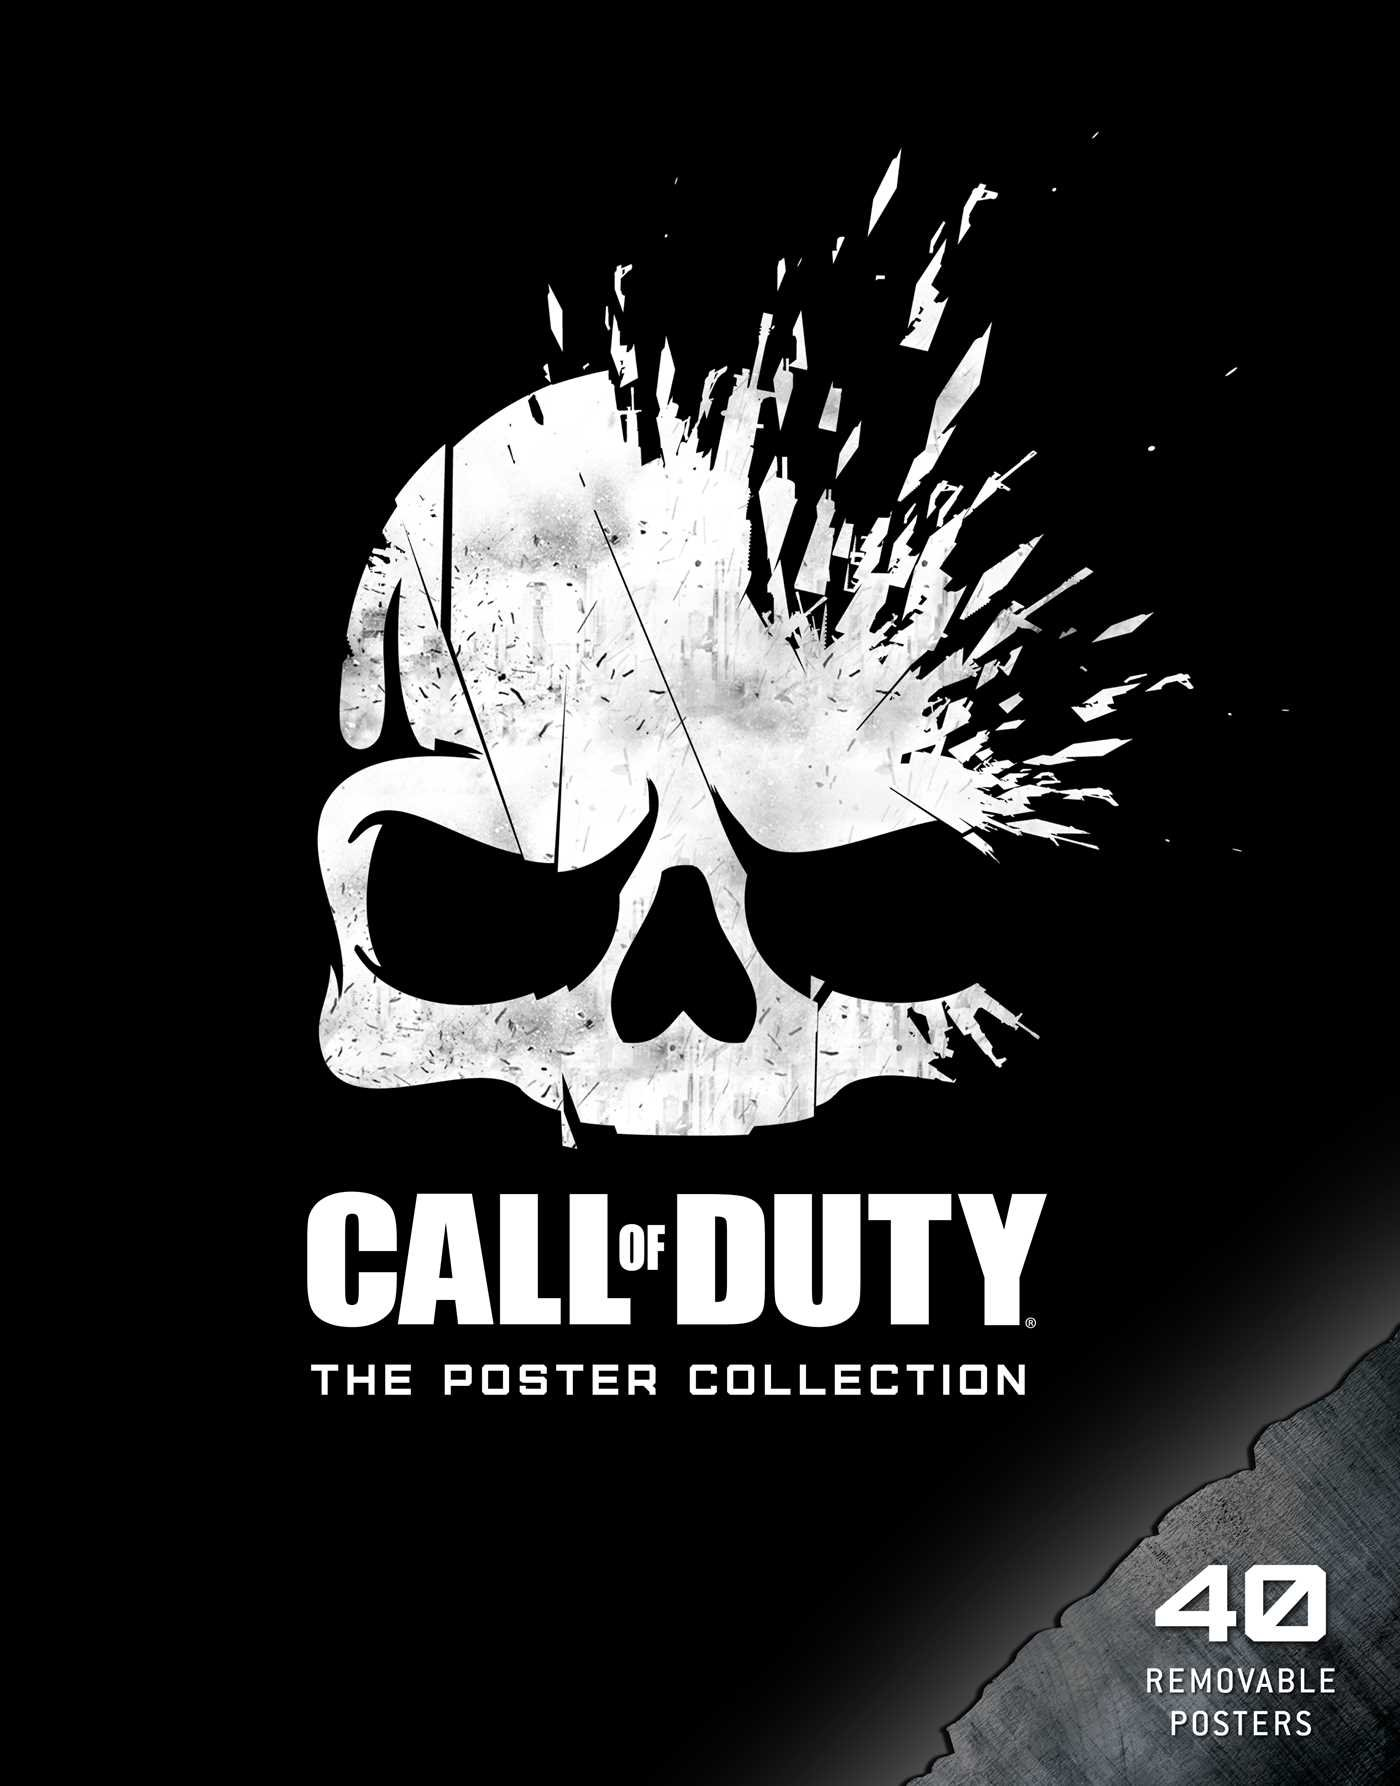 Call Of Duty The Poster Collection Insights Poster Collections Insight Editions 9781608879335 Amazon Com Books